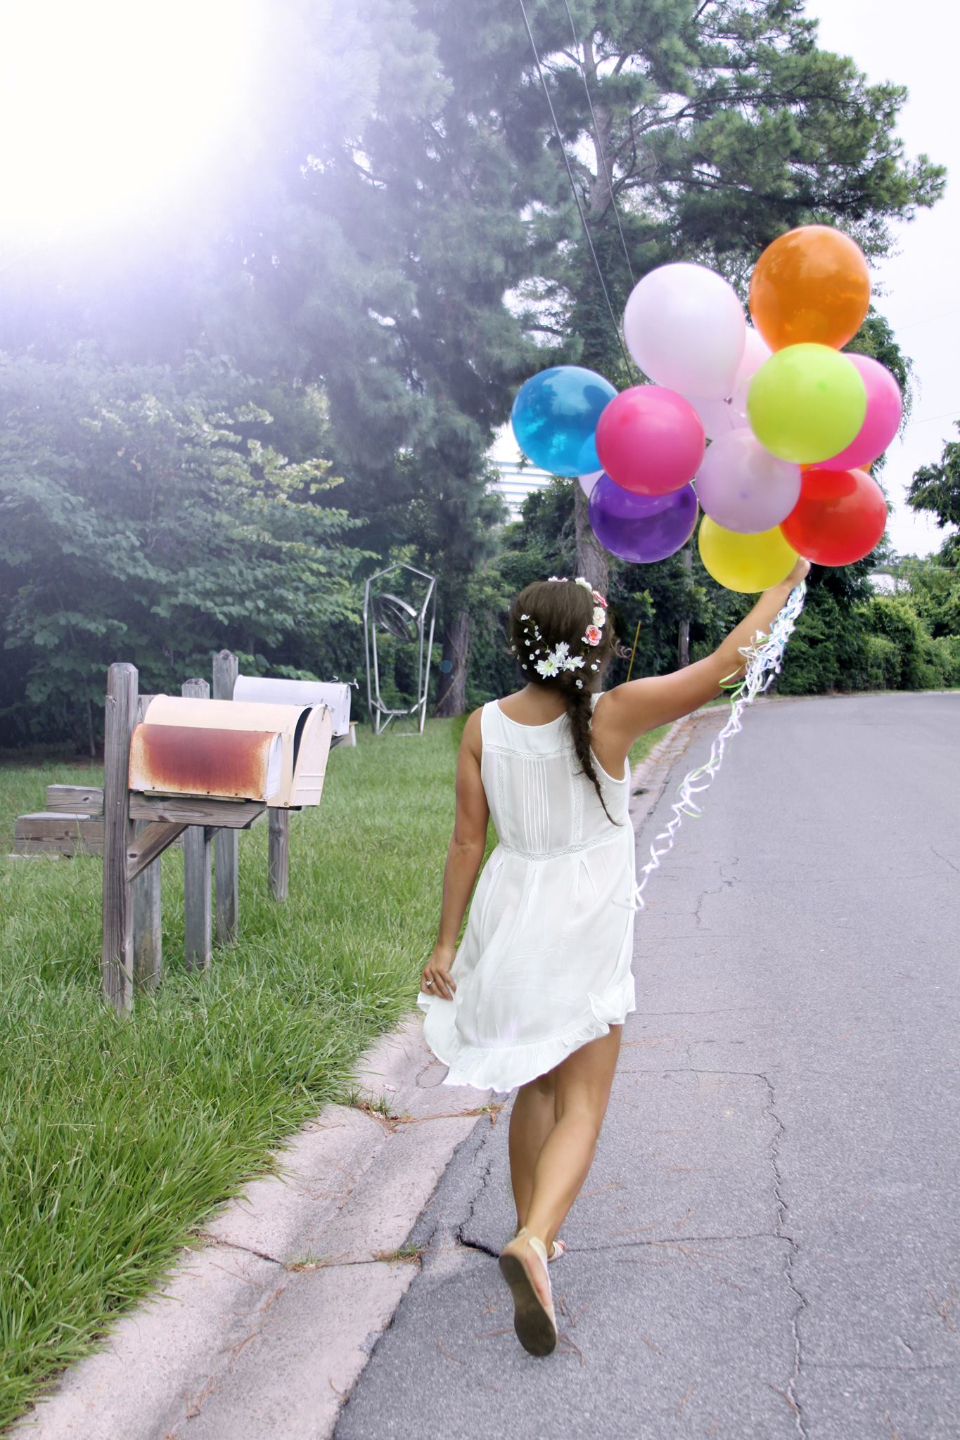 woman balloons person